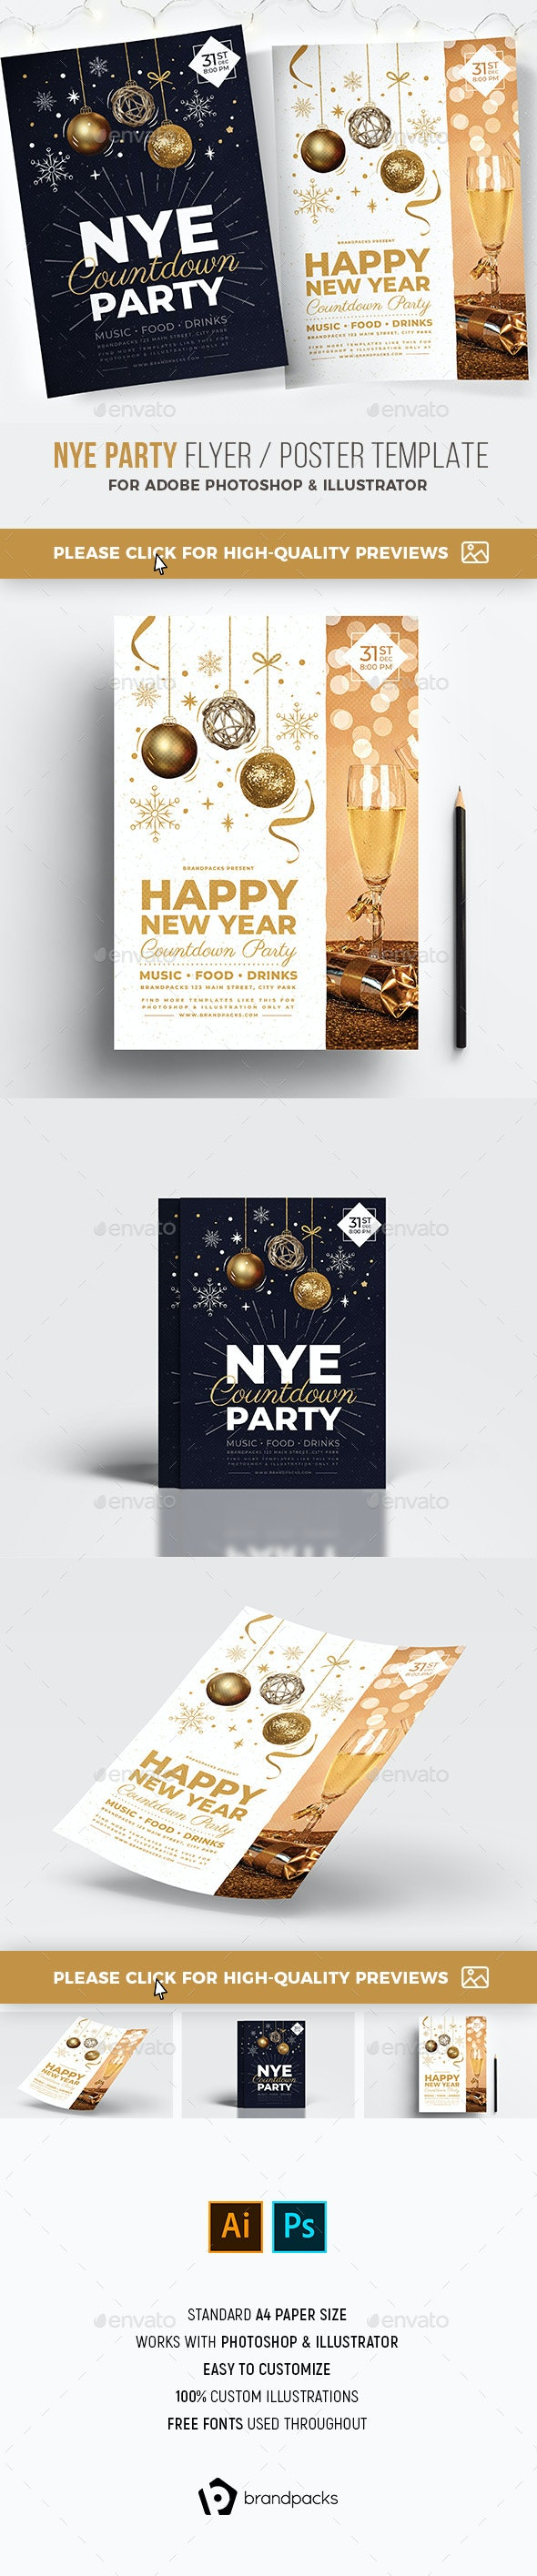 NYE Party Poster / Flyer - Holidays Events